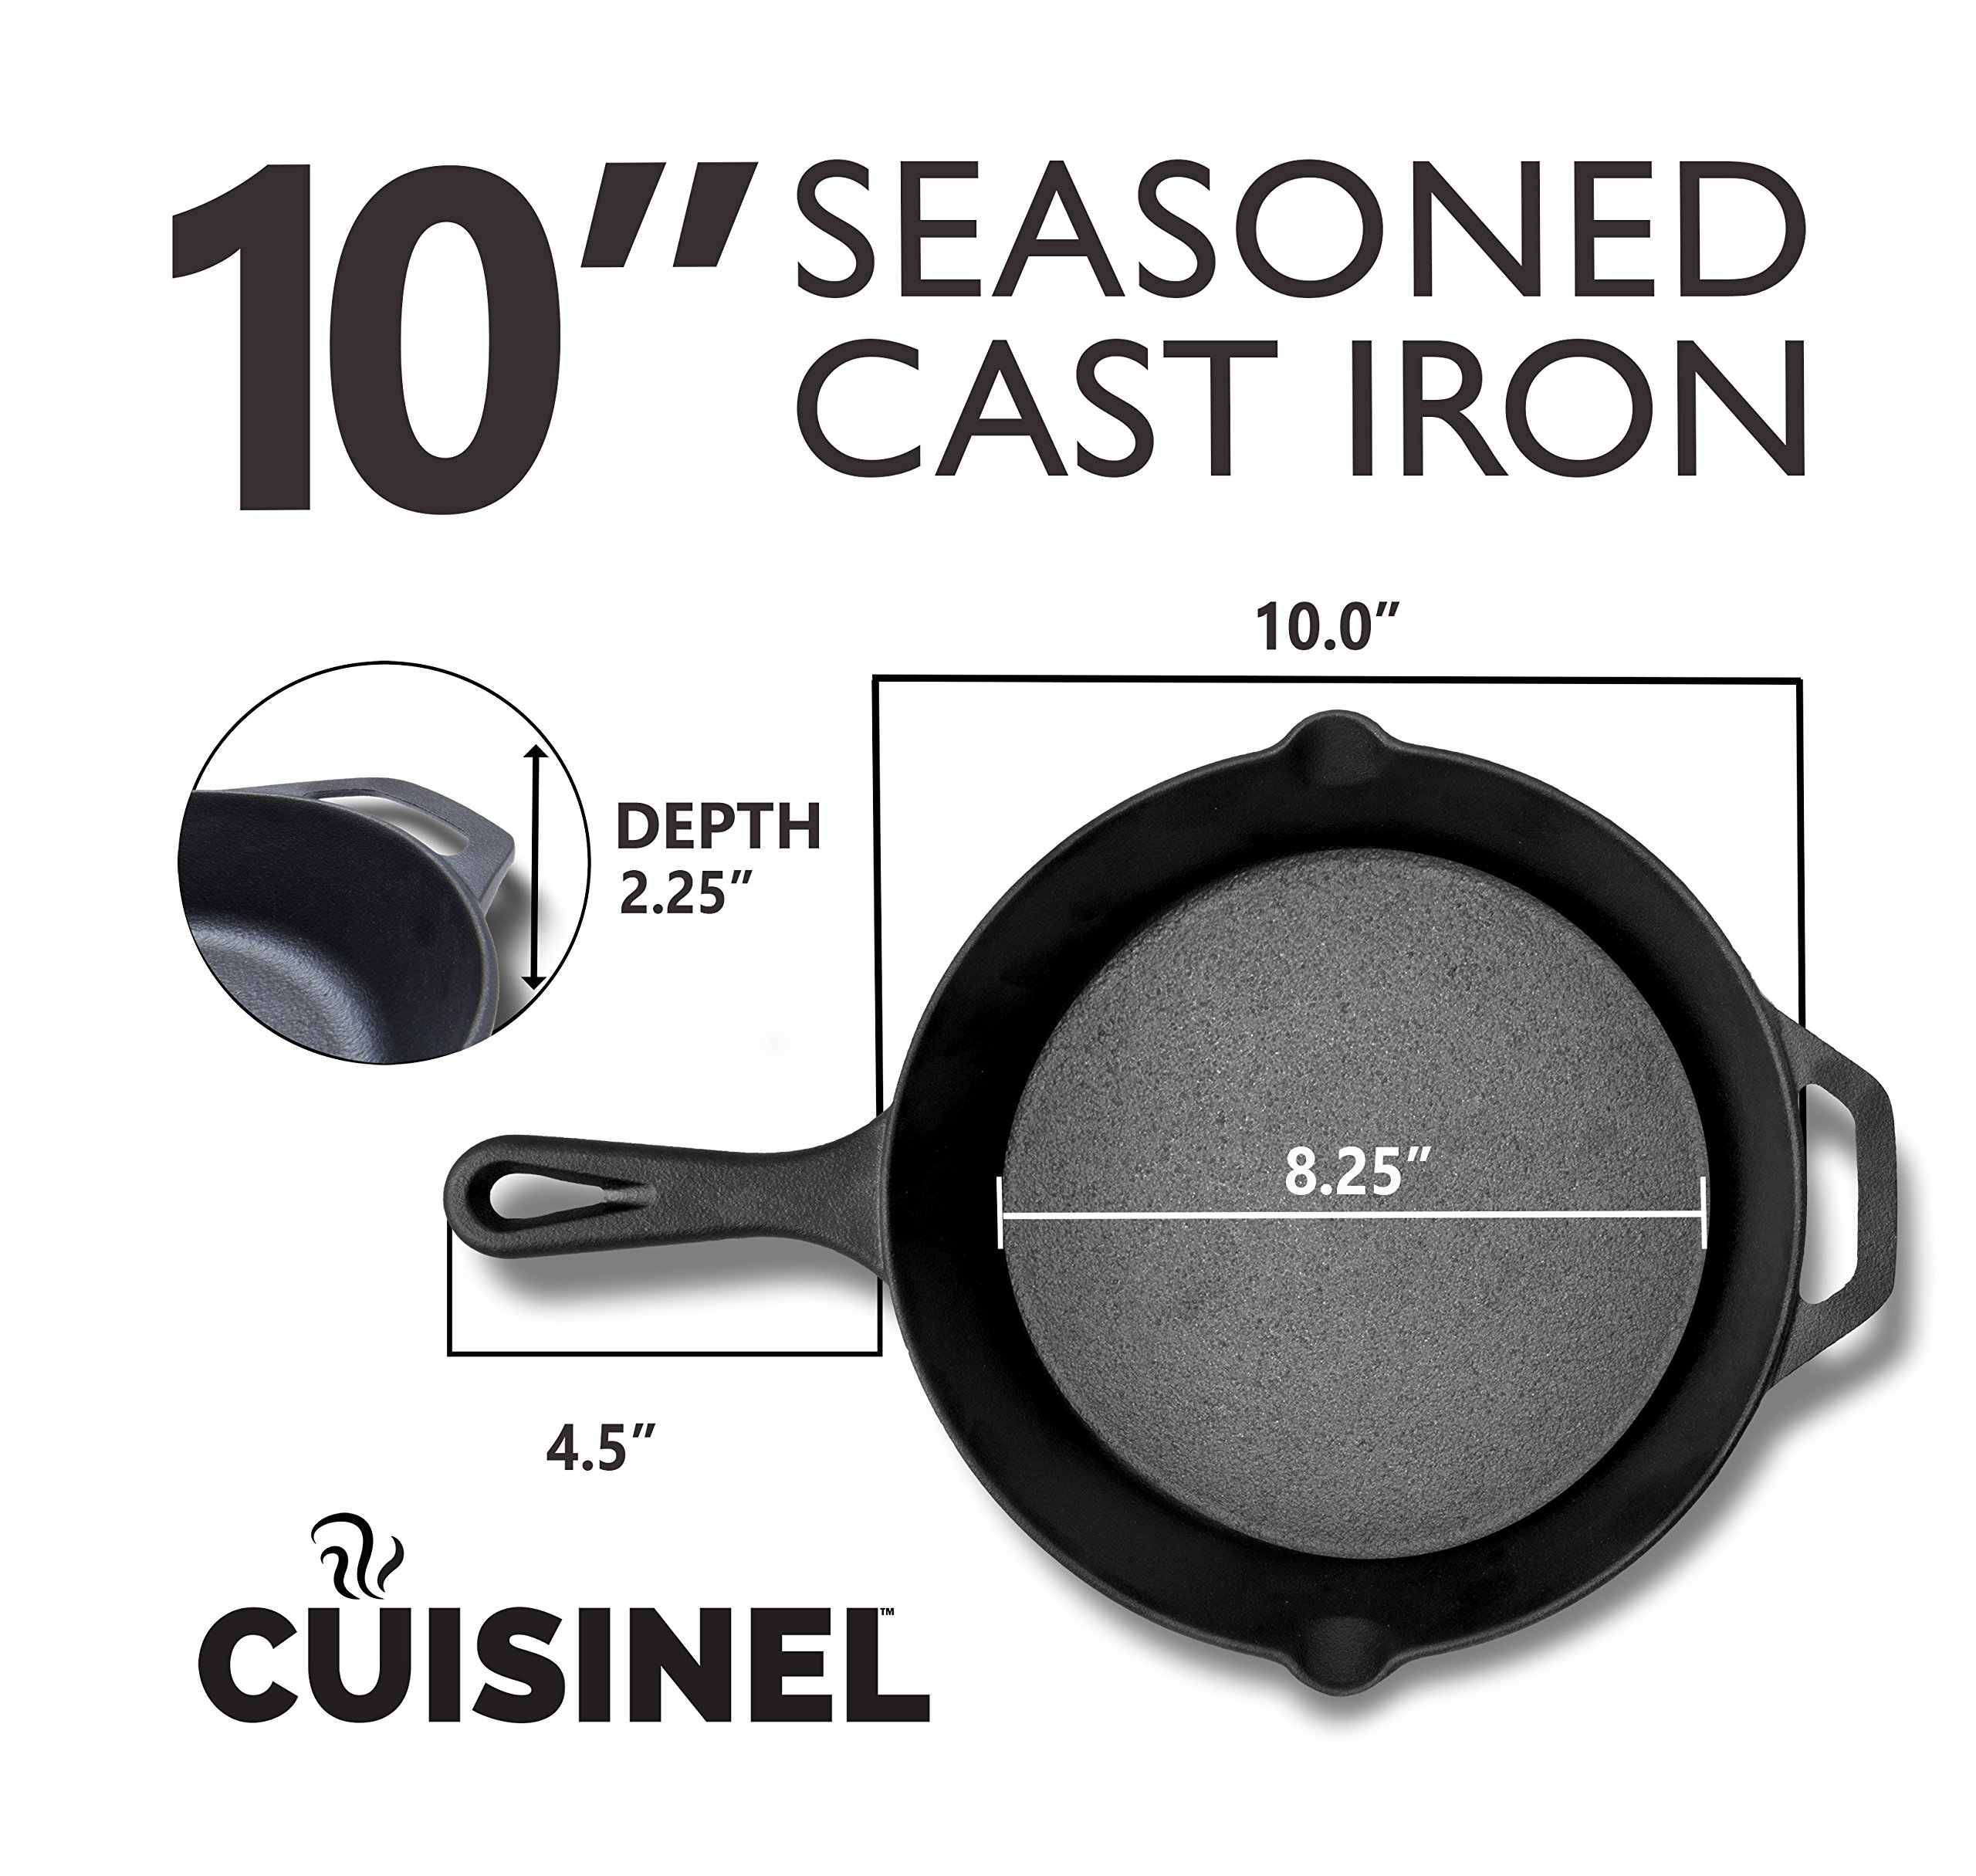 Pre-Seasoned Cast Iron Skillet 2-Piece Set (10-Inch and 12-Inch) Oven Safe Cookware | 2 Heat-Resistant Holders | Indoor and Outdoor Use | Grill, Stovetop, Induction Safe by cuisinel (Image #4)